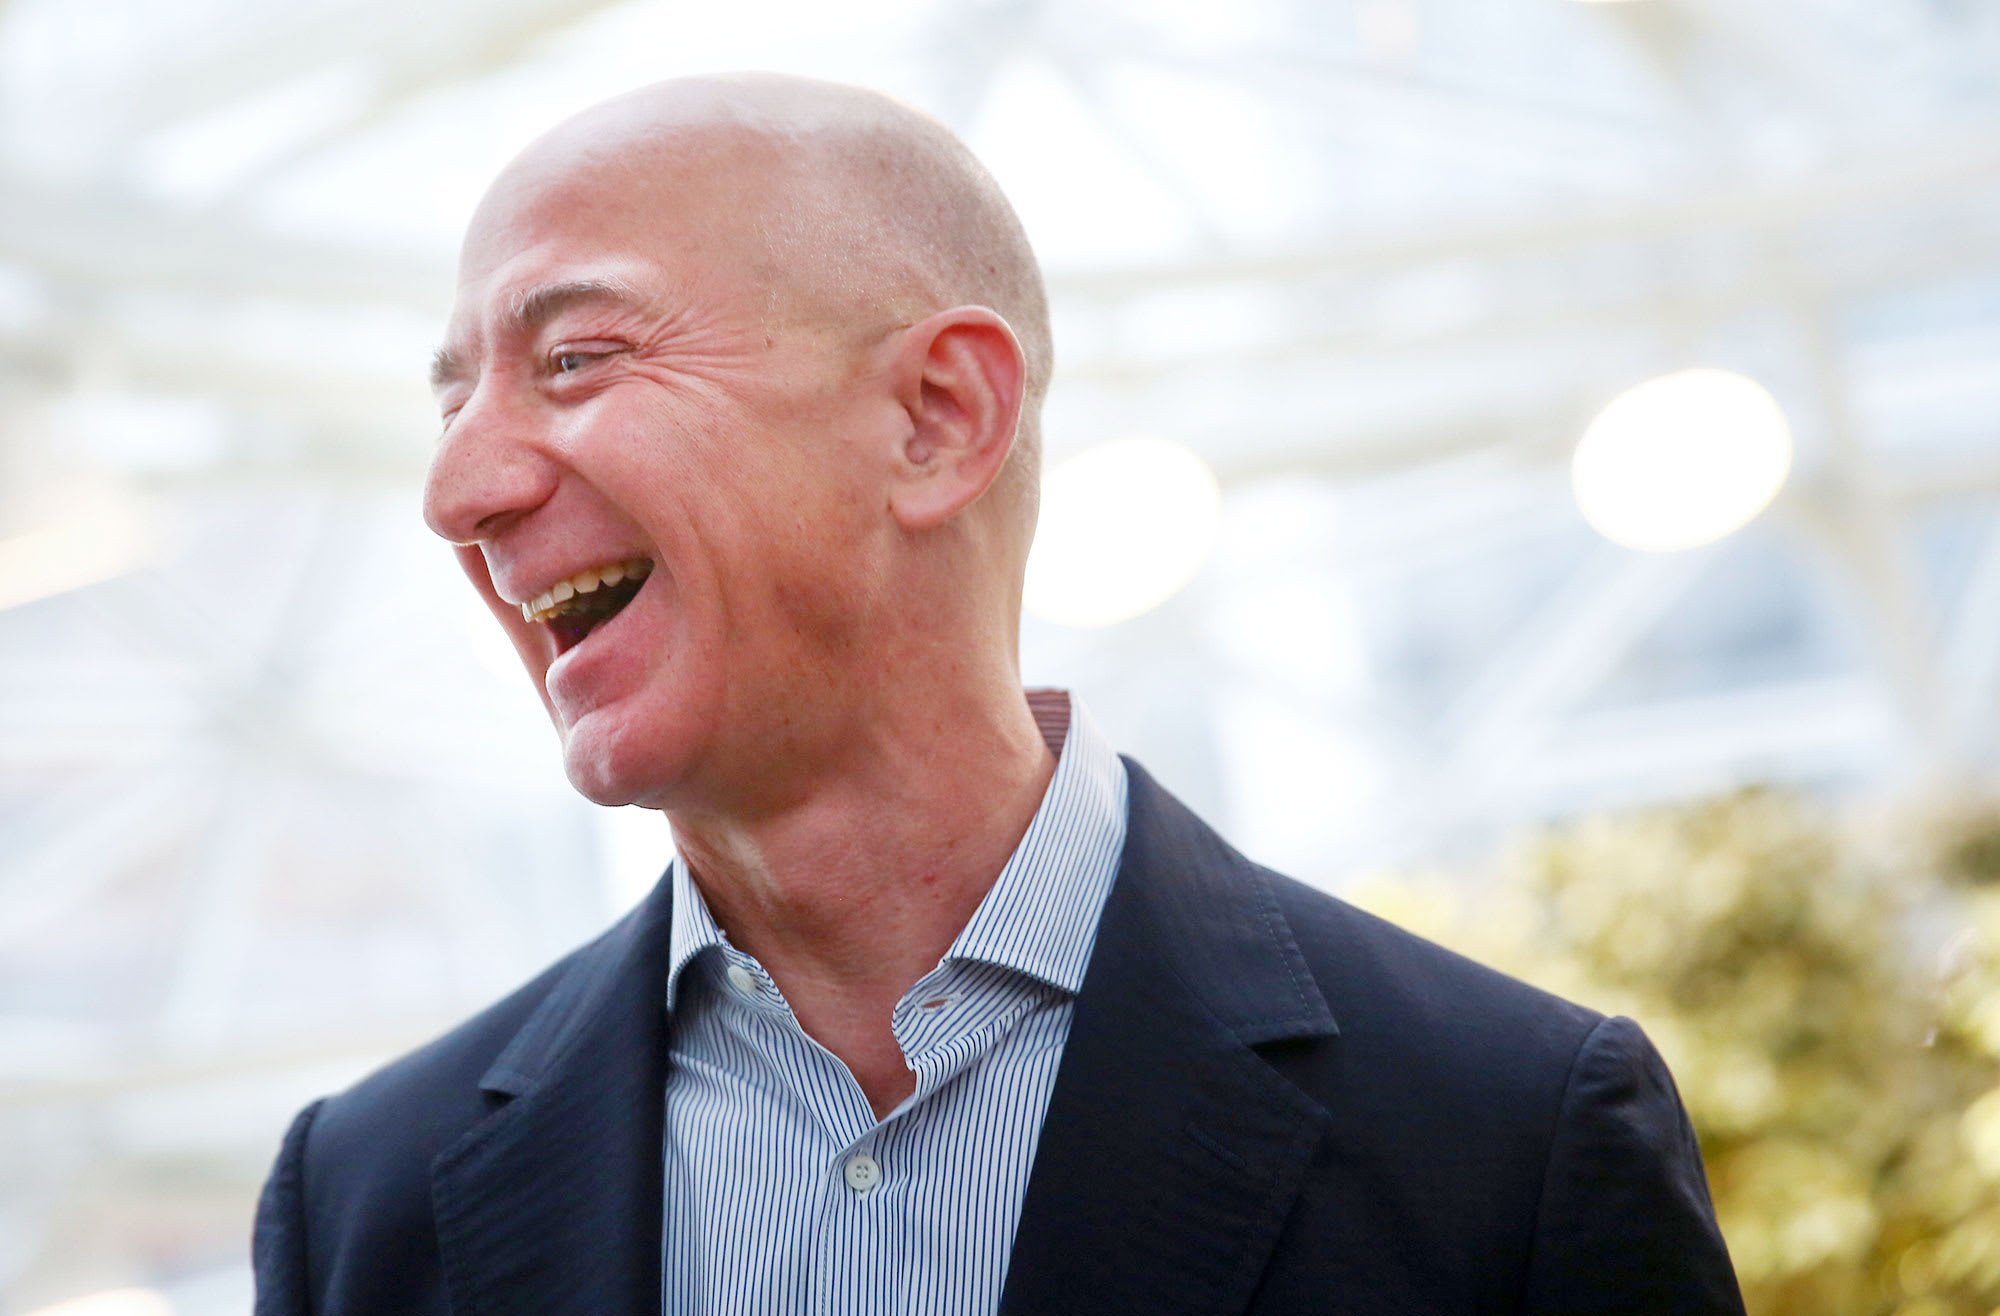 Amazon joins the trillion-dollar club again after knockout earnings report